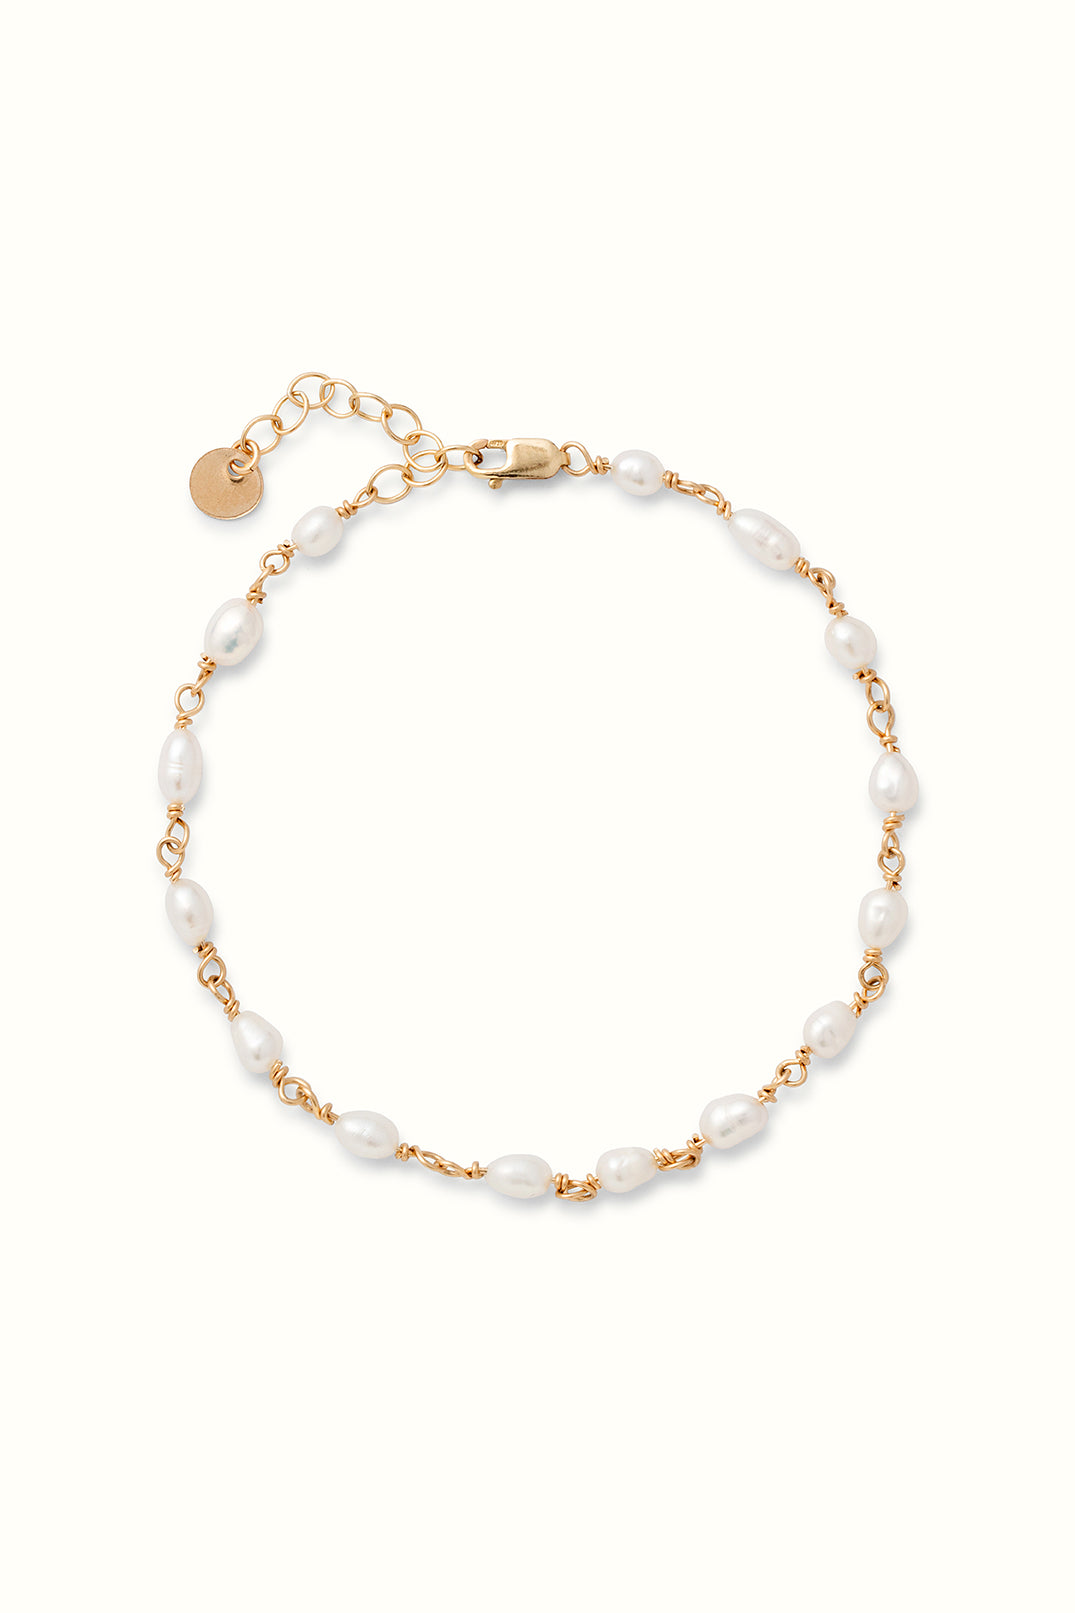 a gold filled pearl rosary bracelet lying on a white surface